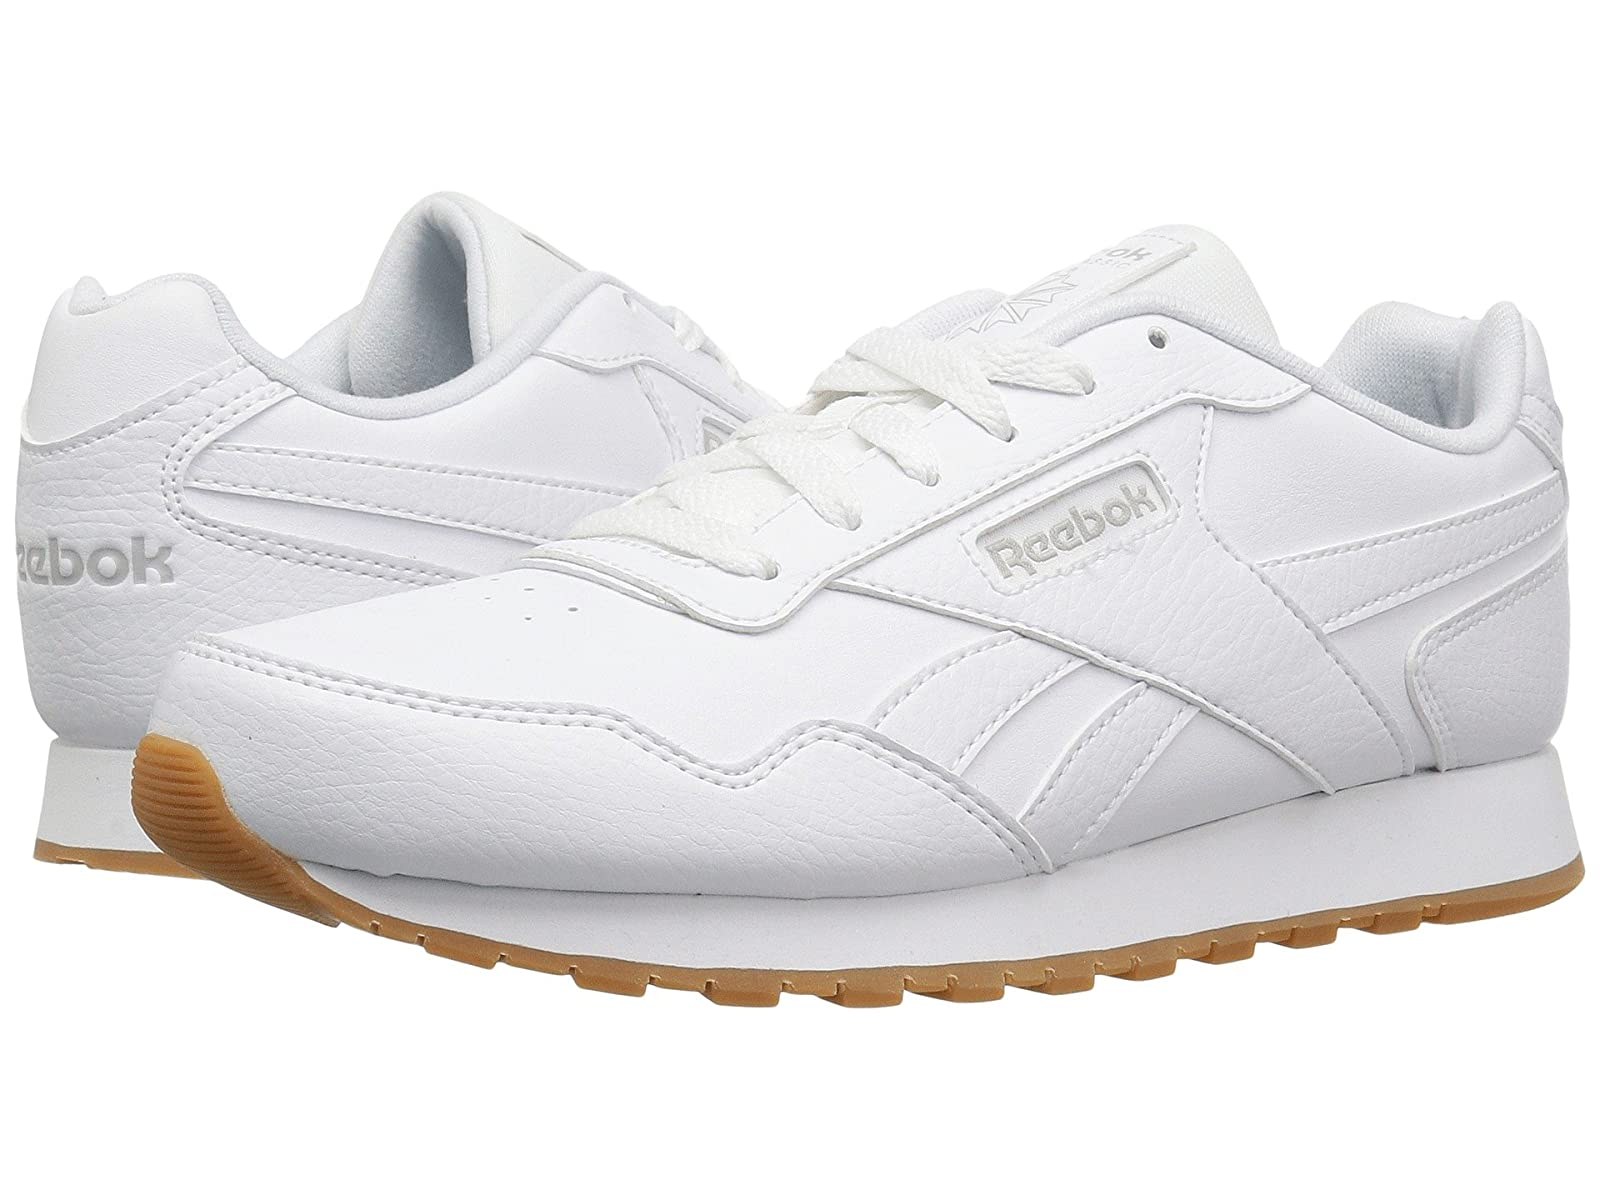 Reebok Classic Harman RunCheap and distinctive eye-catching shoes